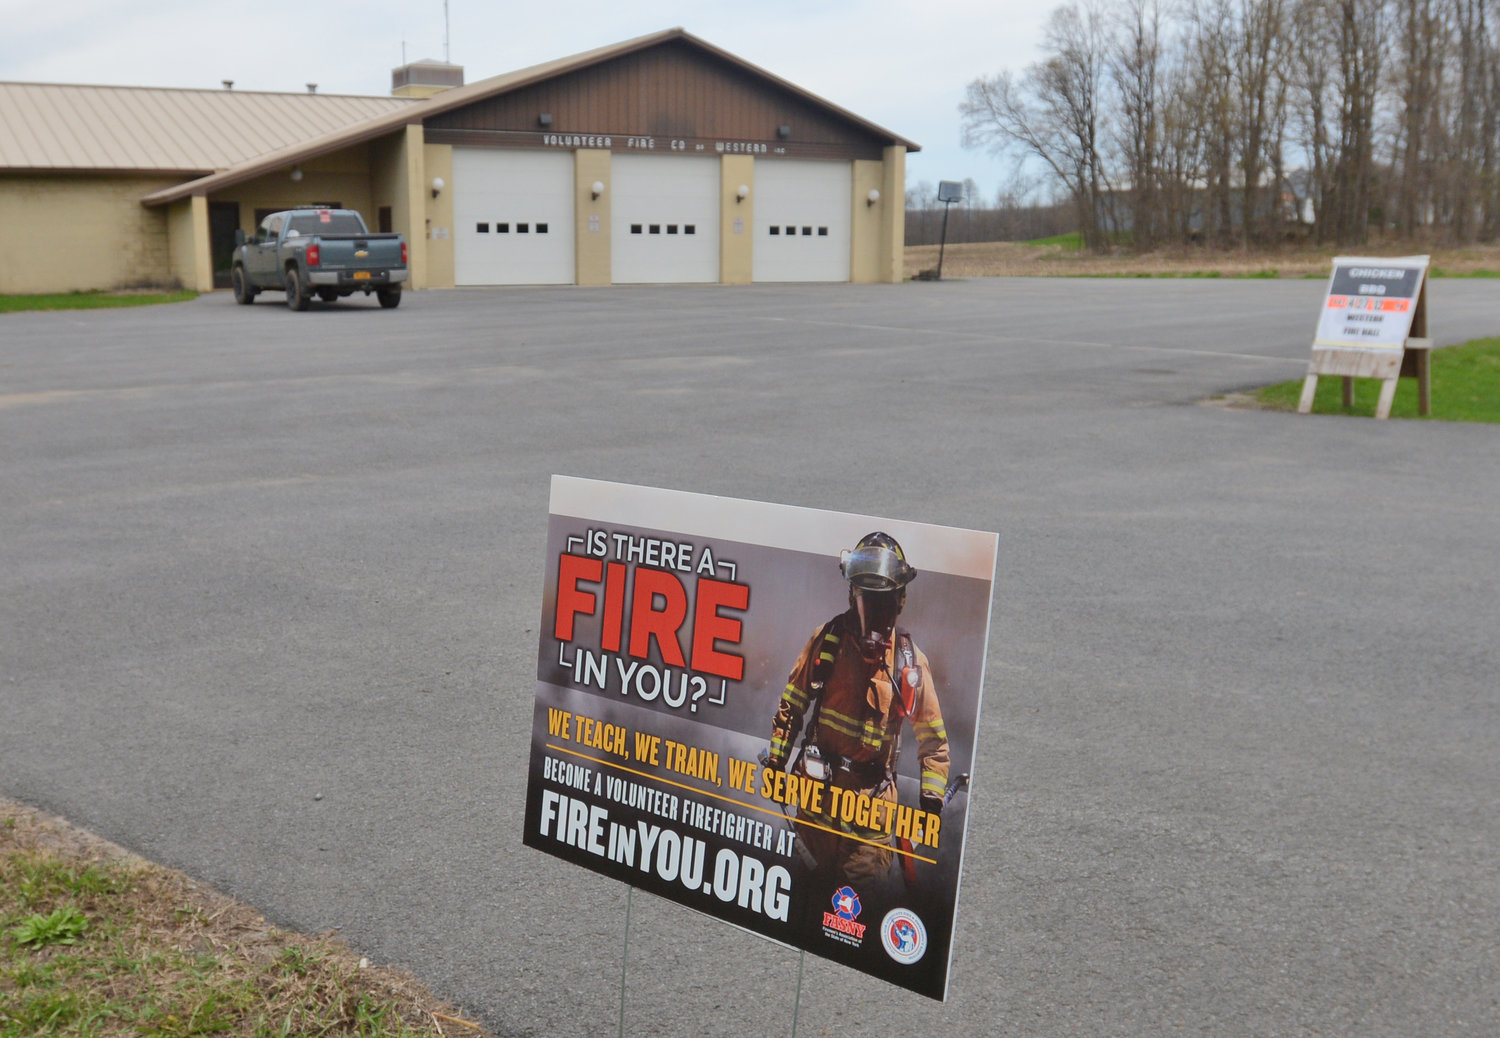 Western fire barn with a recruitment sign in the foreground.